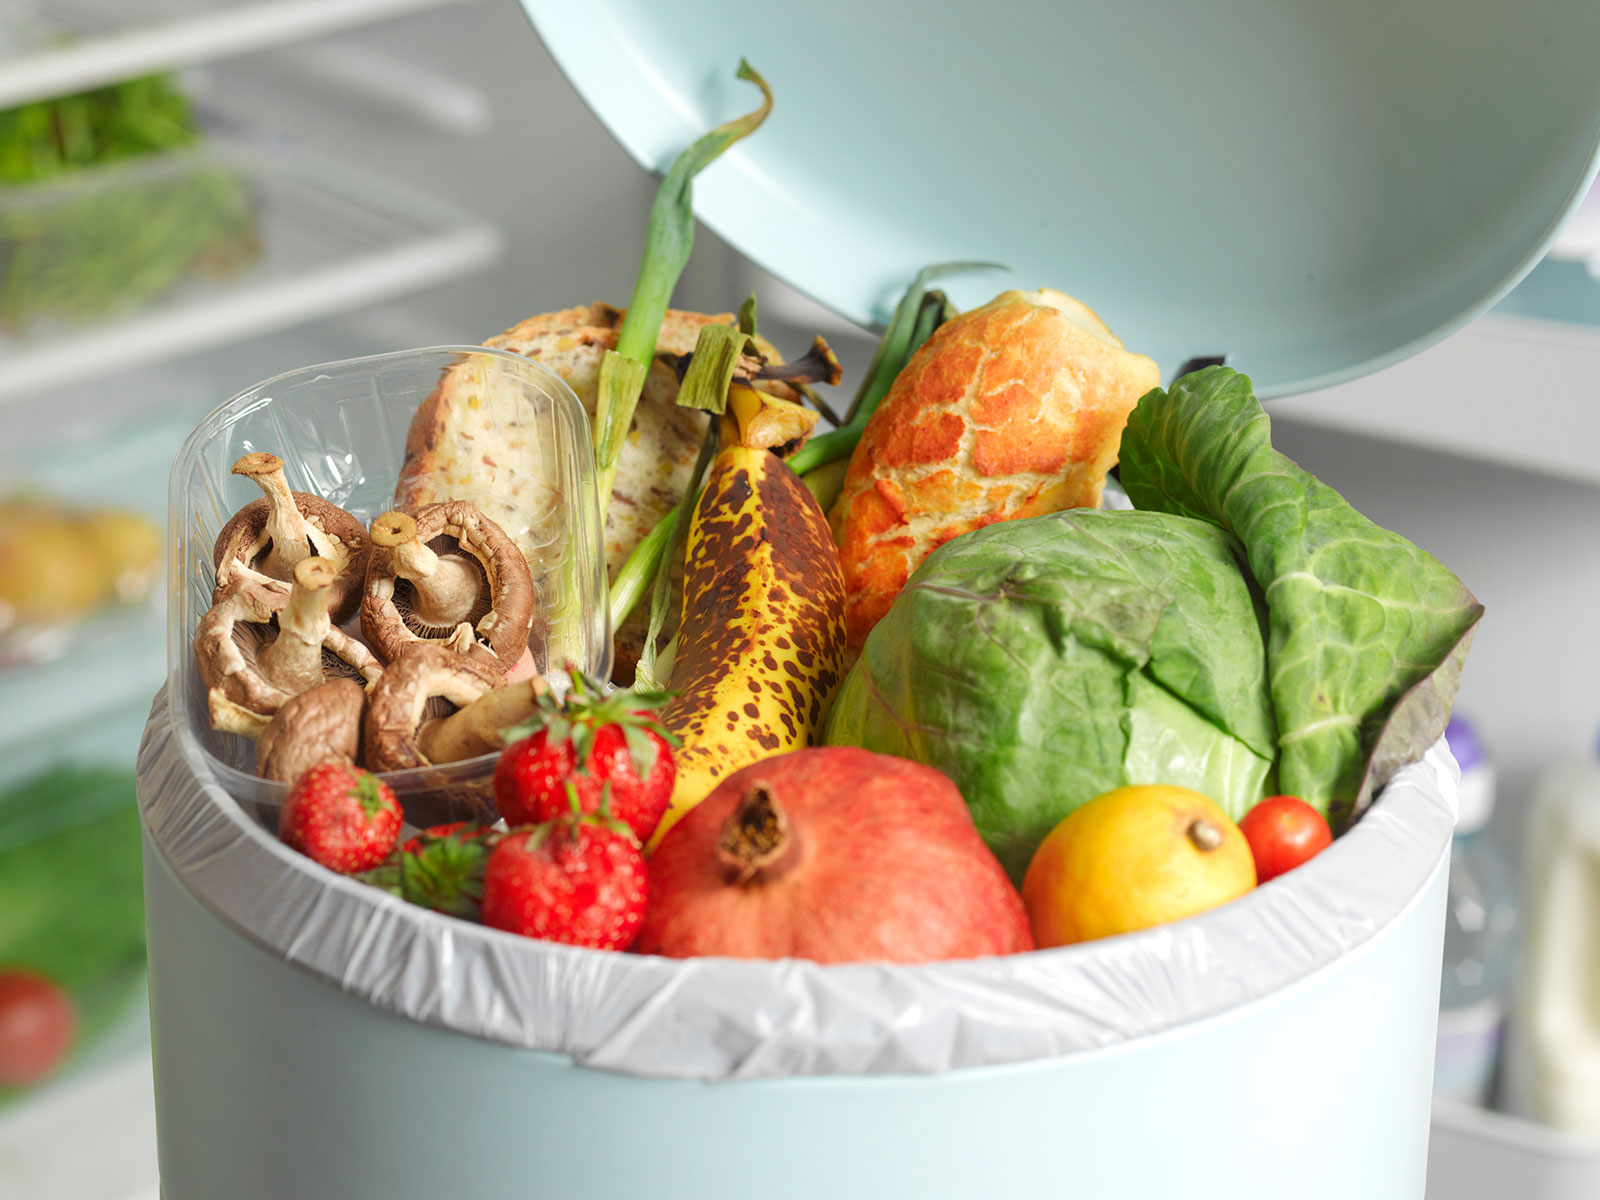 How the Food & Wine Test Kitchen Reduces Food Waste on a Daily Basis